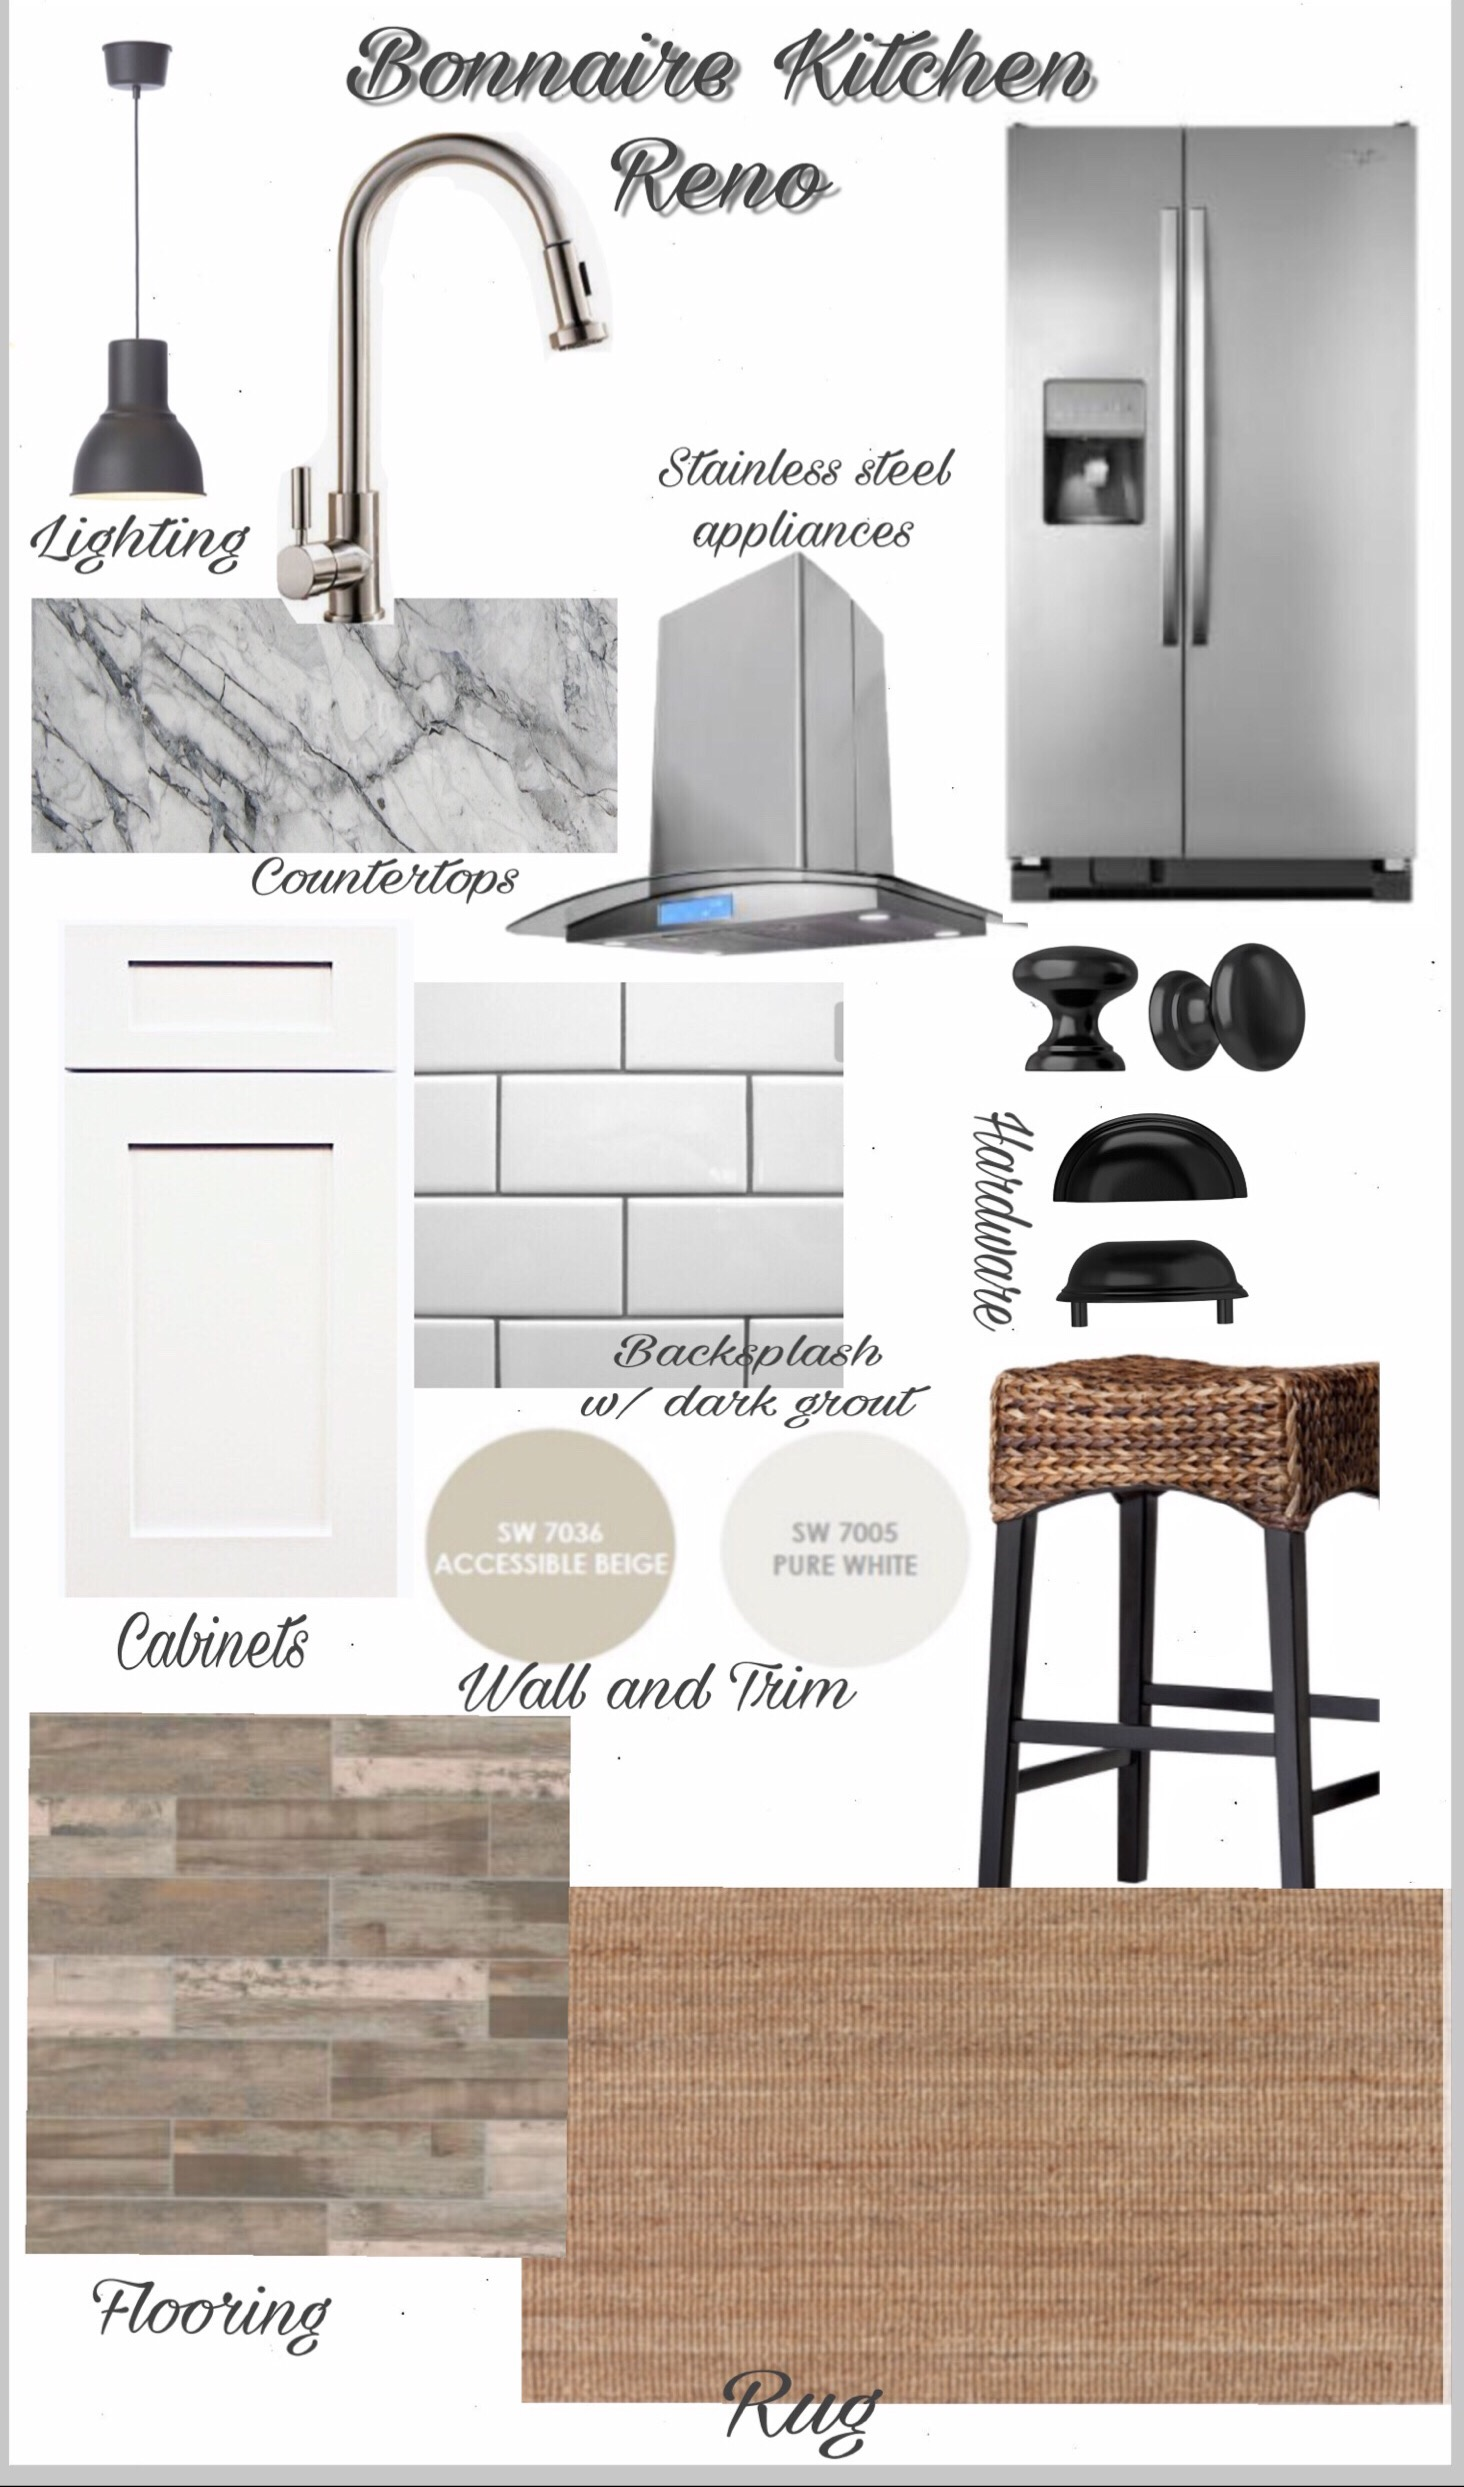 Kitchen Reno design board